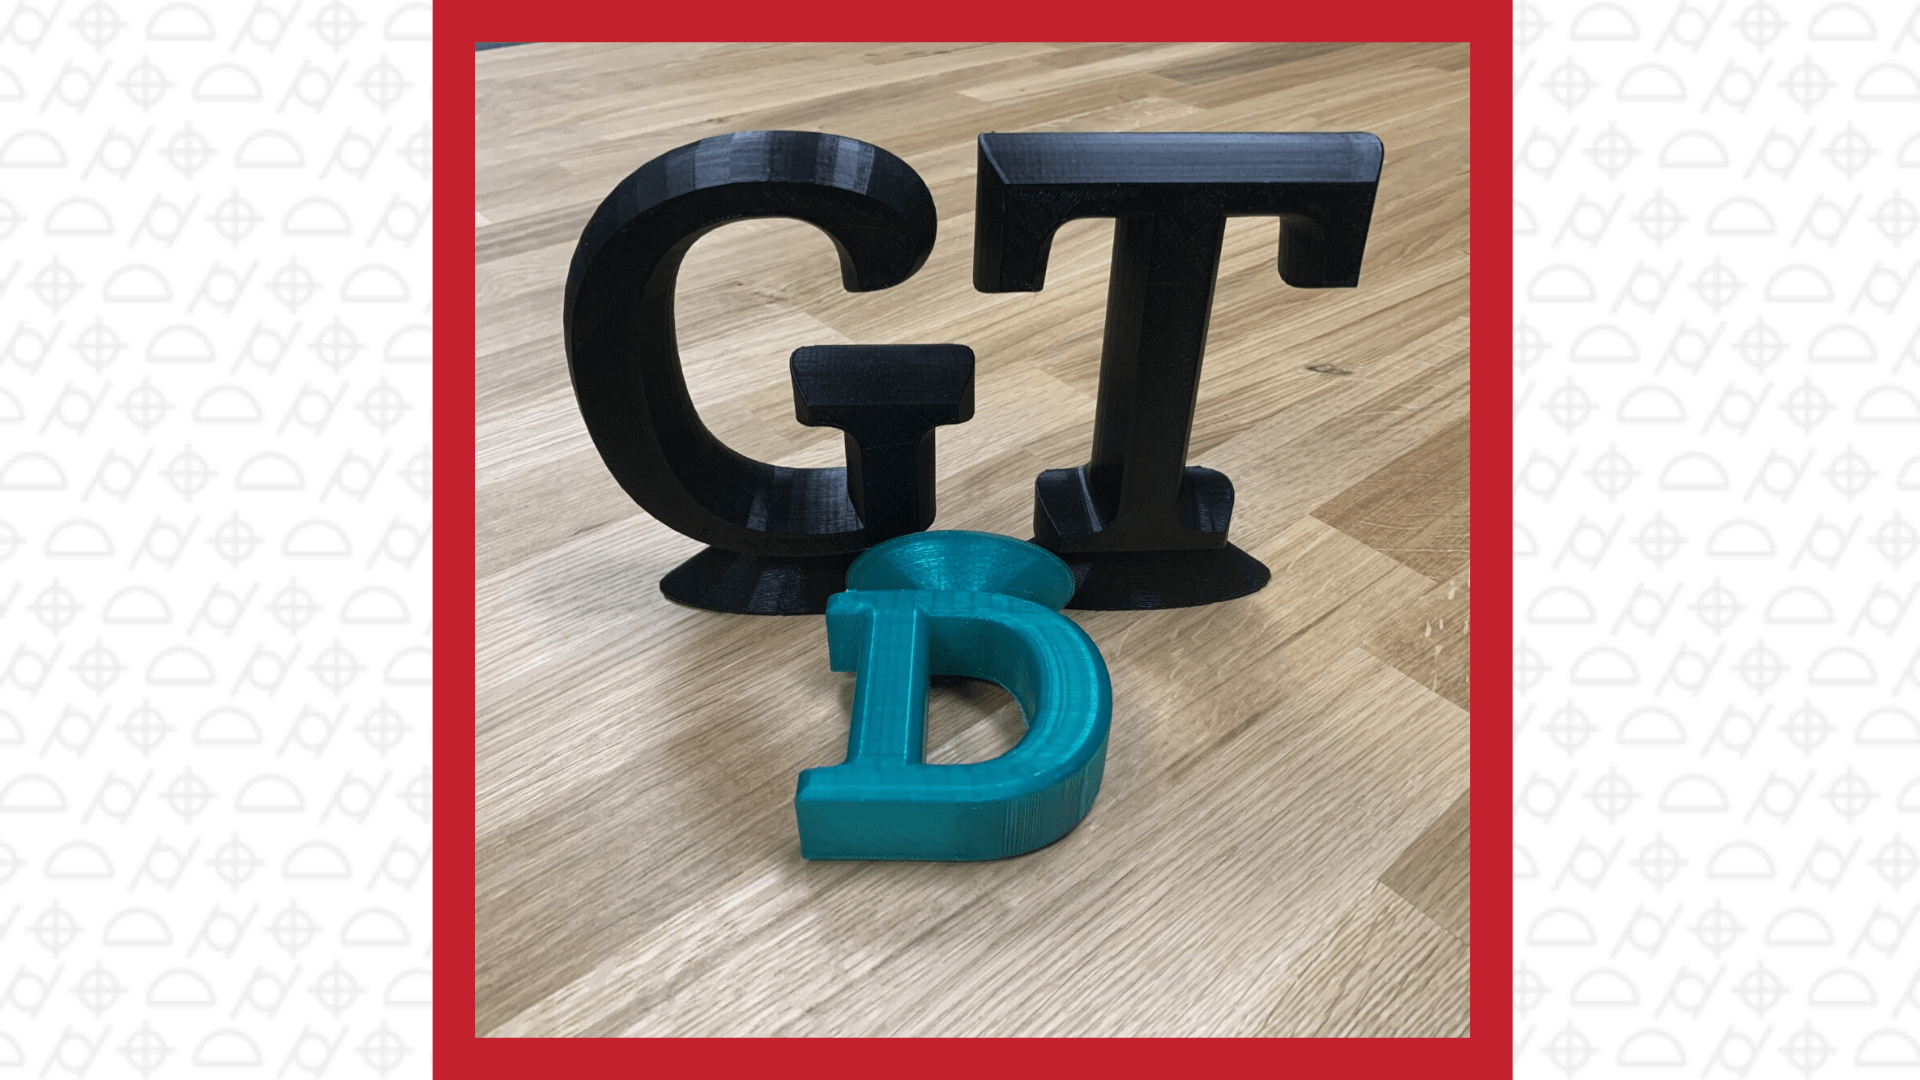 3D printed capital letters black G, black T, smaller blue D laying down on the table